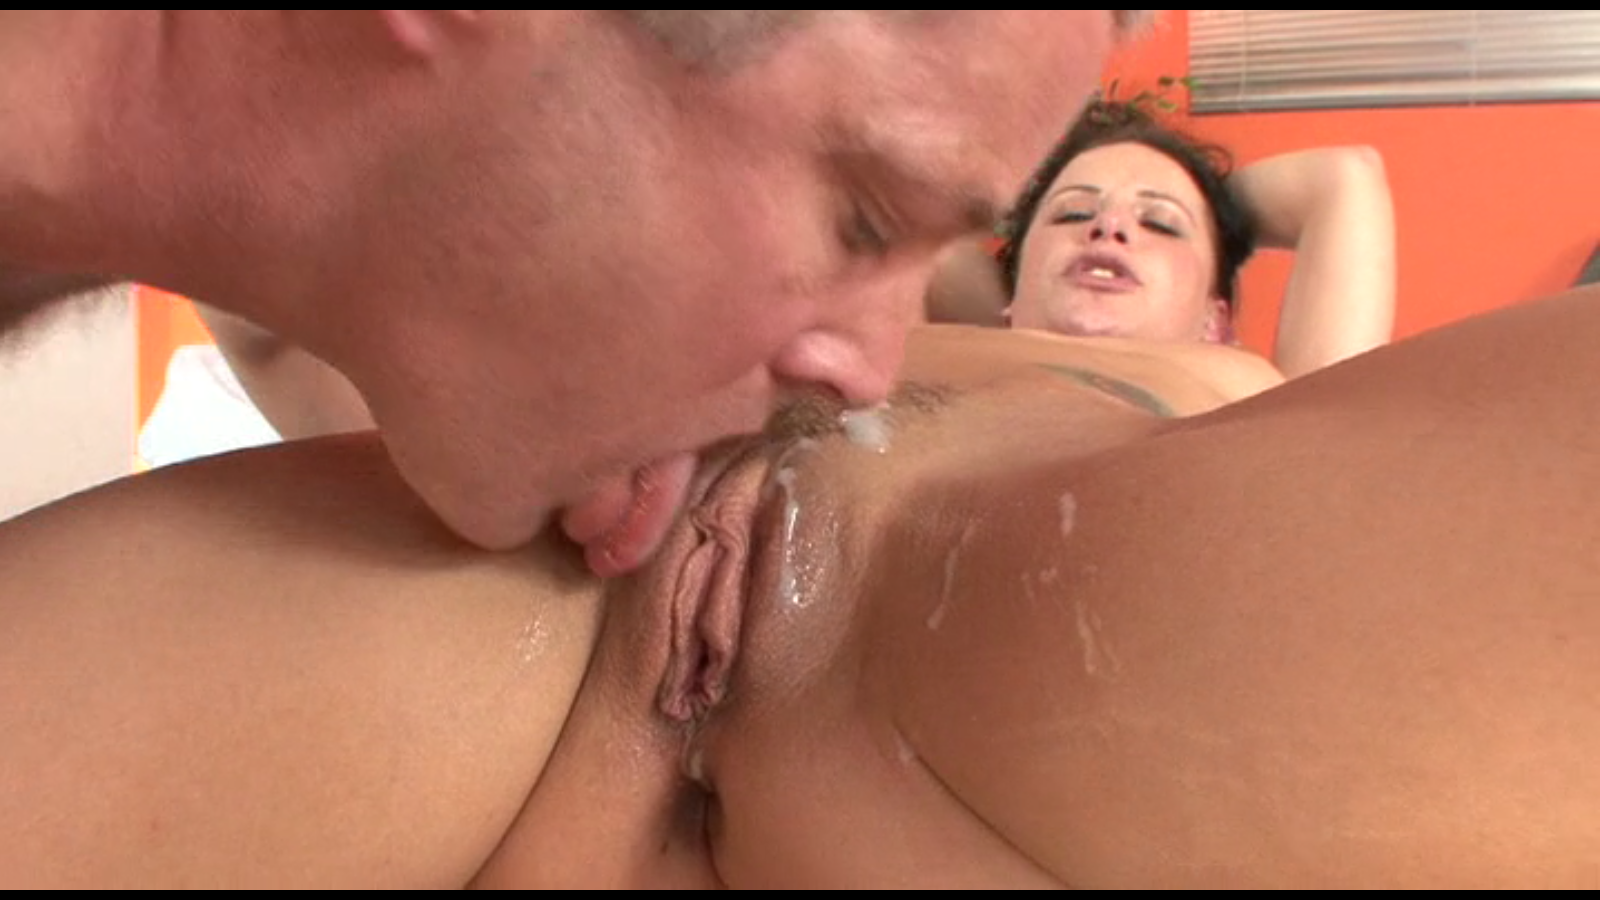 Smell wolf. creampie eating gangbang thick cock love